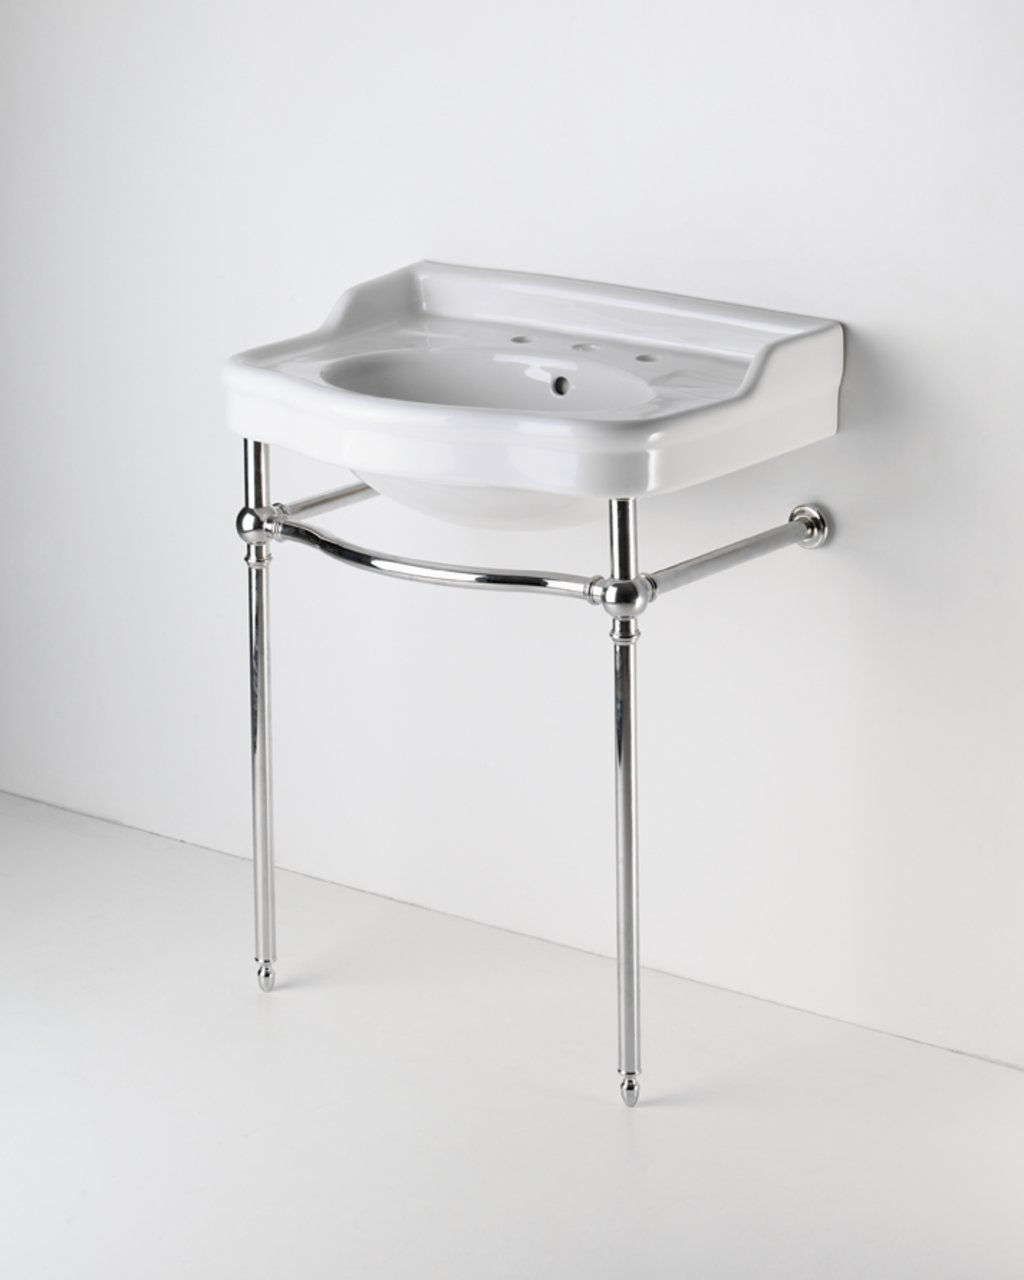 Sink Consoles Bathroom: Interior Philosophy: My Top 5 Bathroom Vanities/ Sink Basins